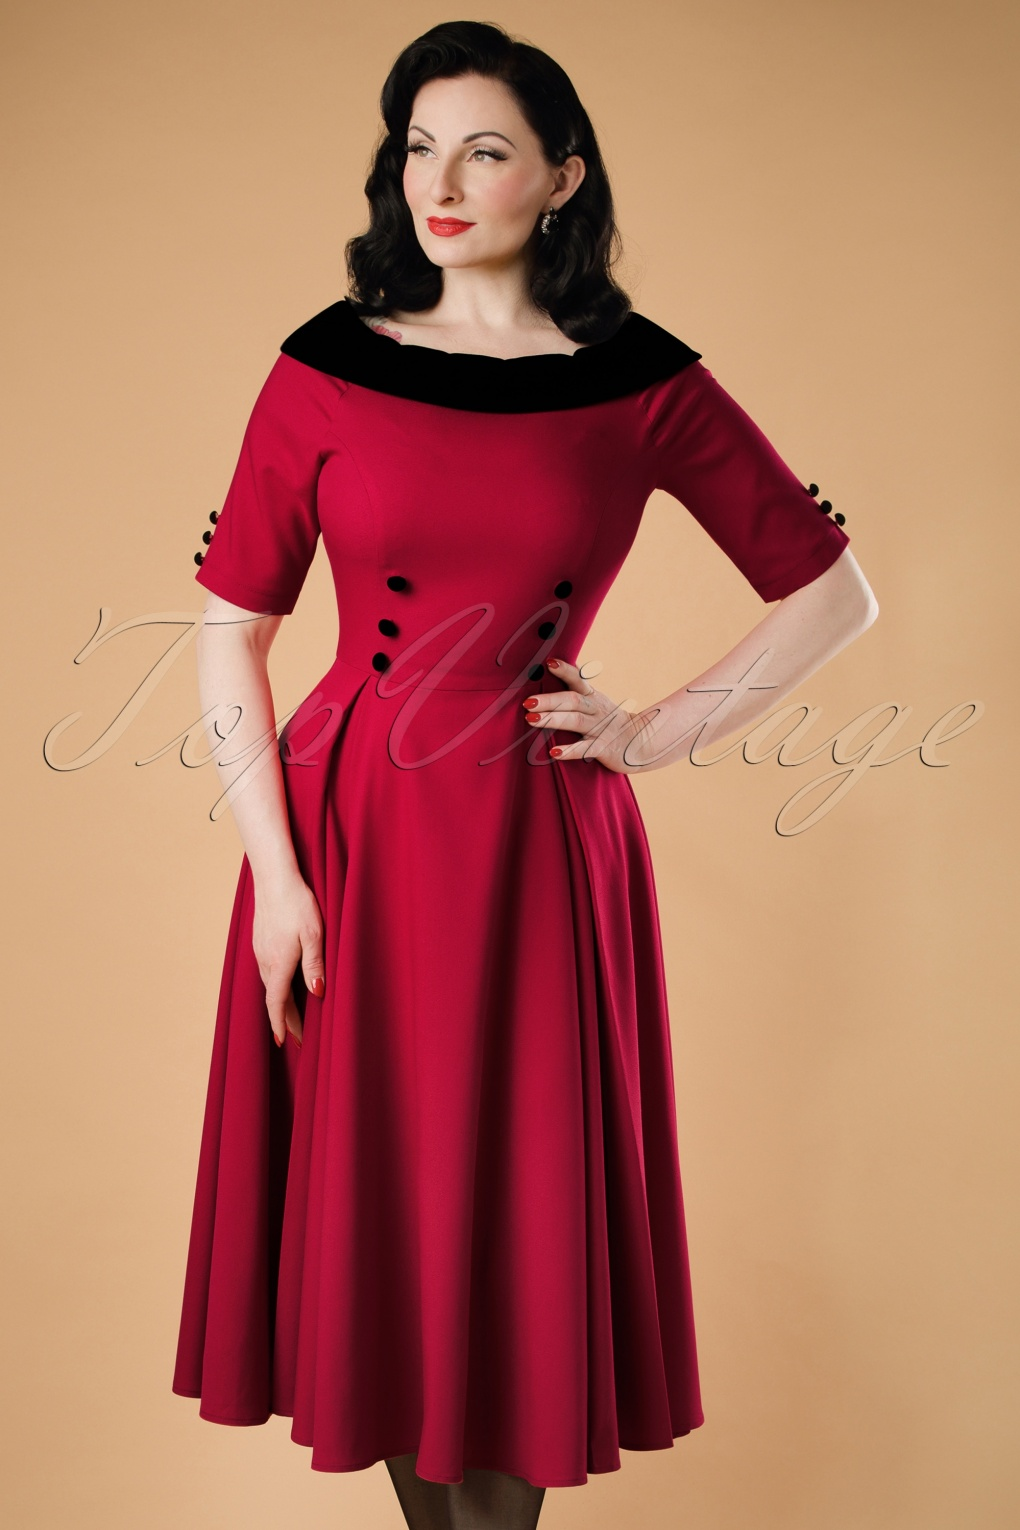 50s Carrera Swing Dress In Red